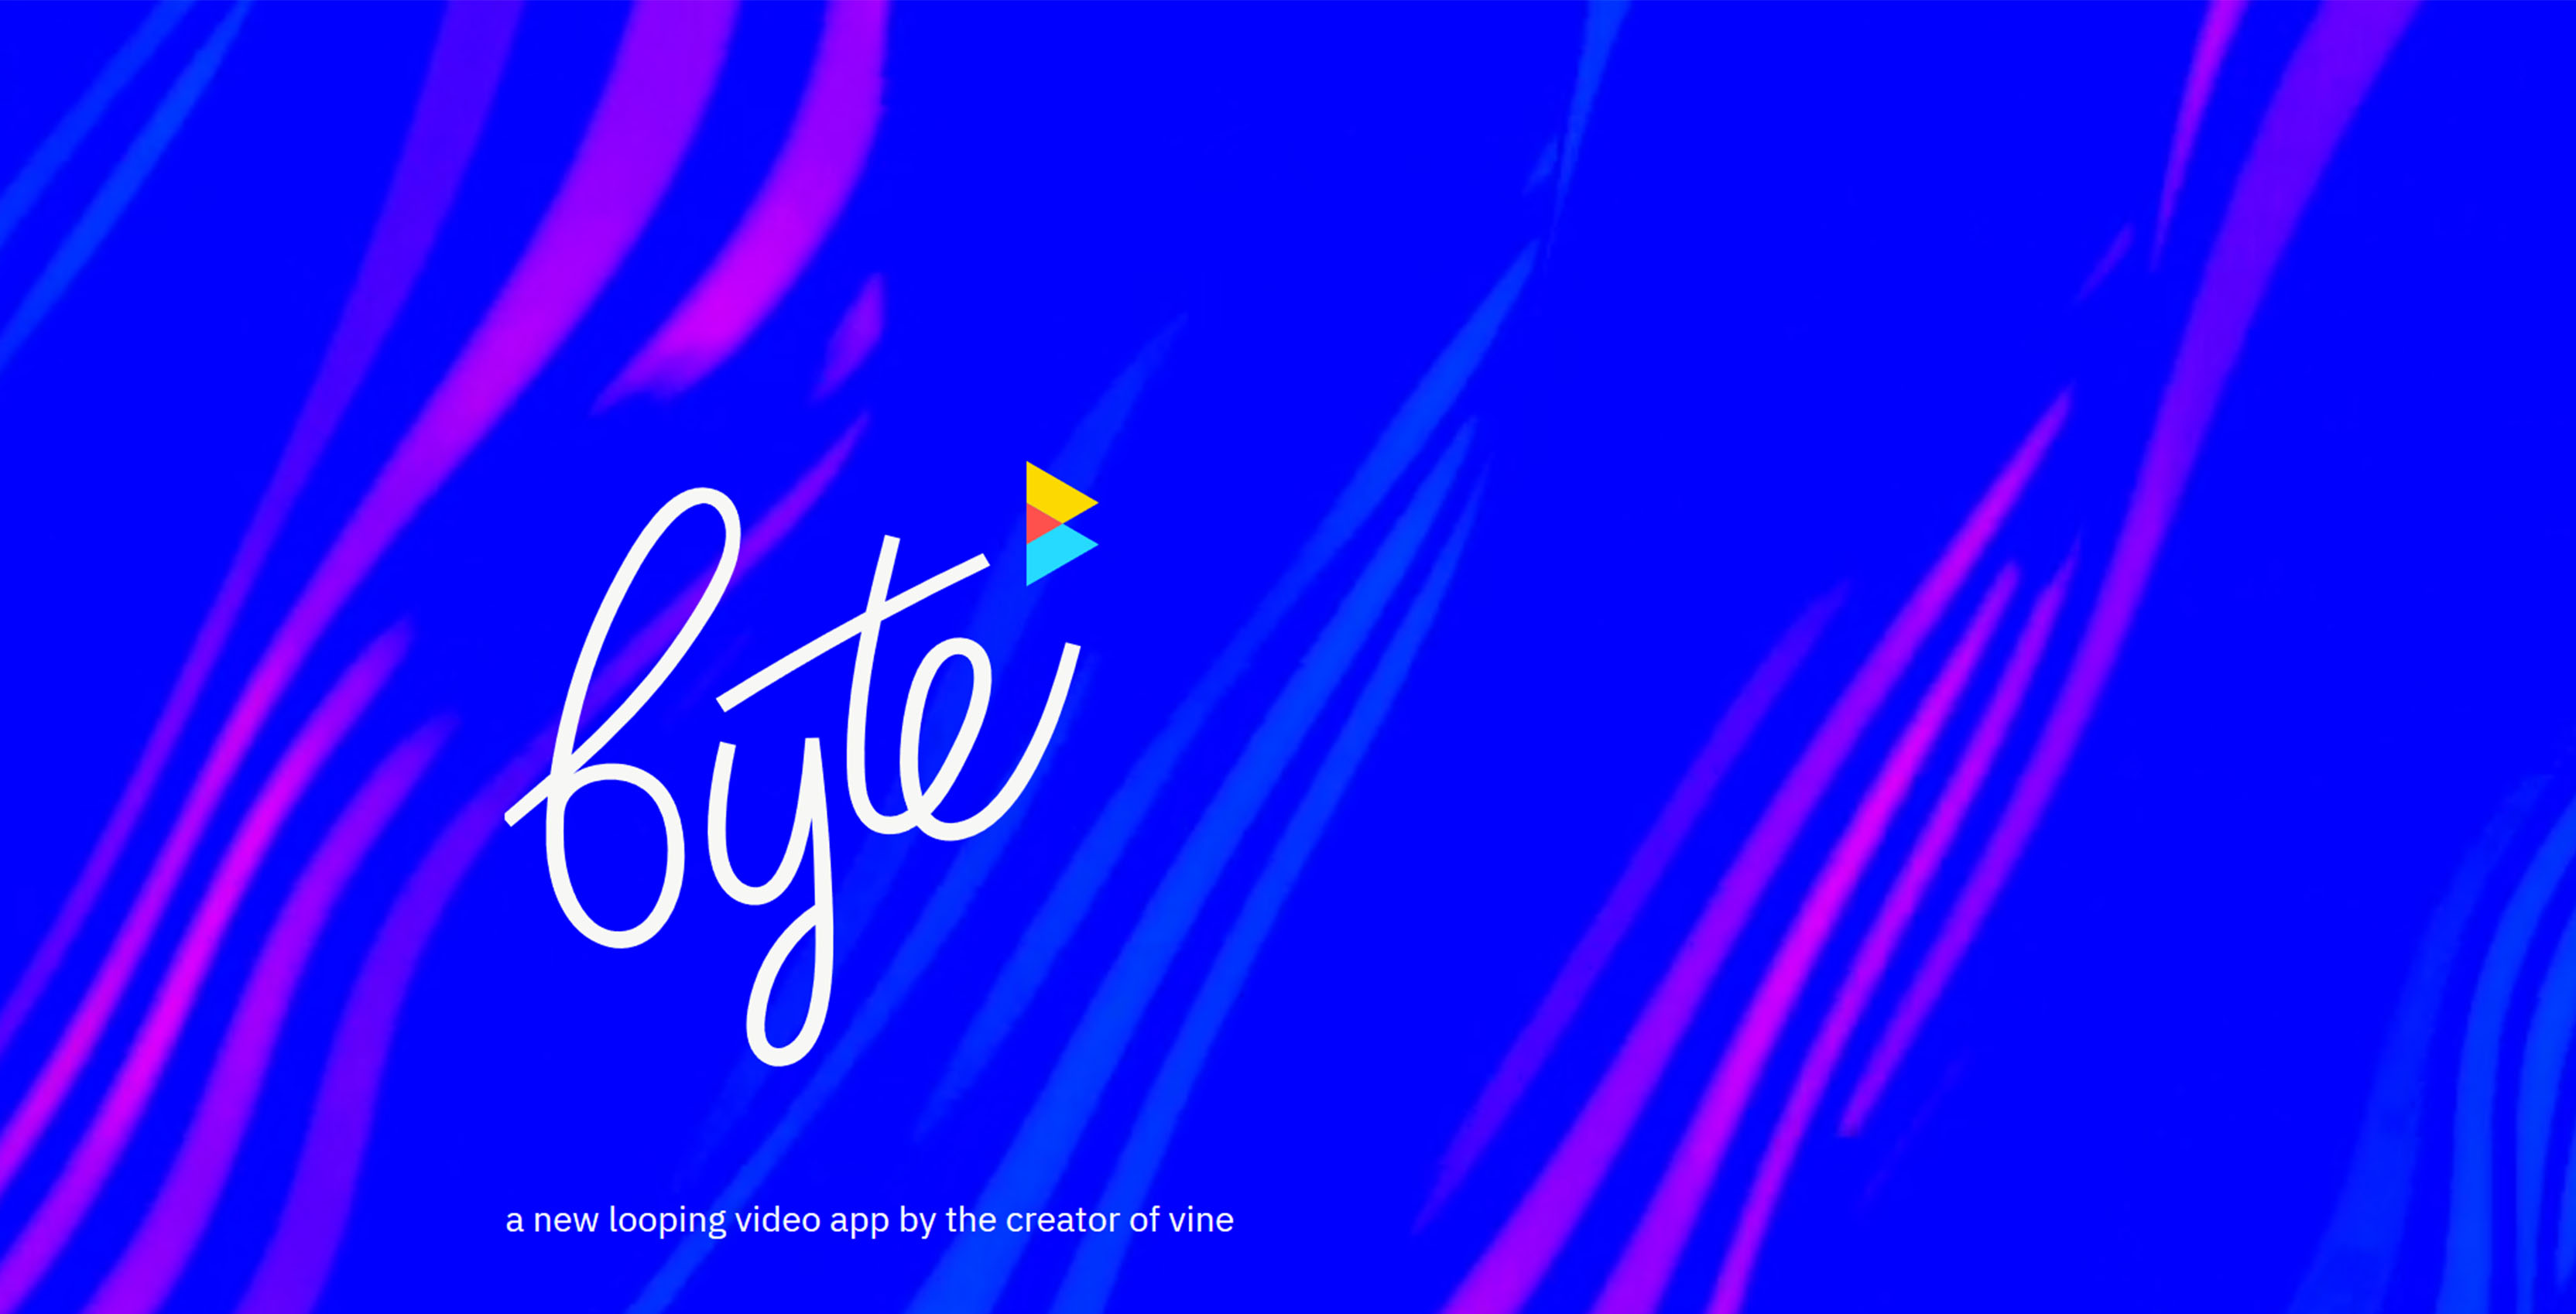 Byte, a creation app from the co-founder of Vine, is coming